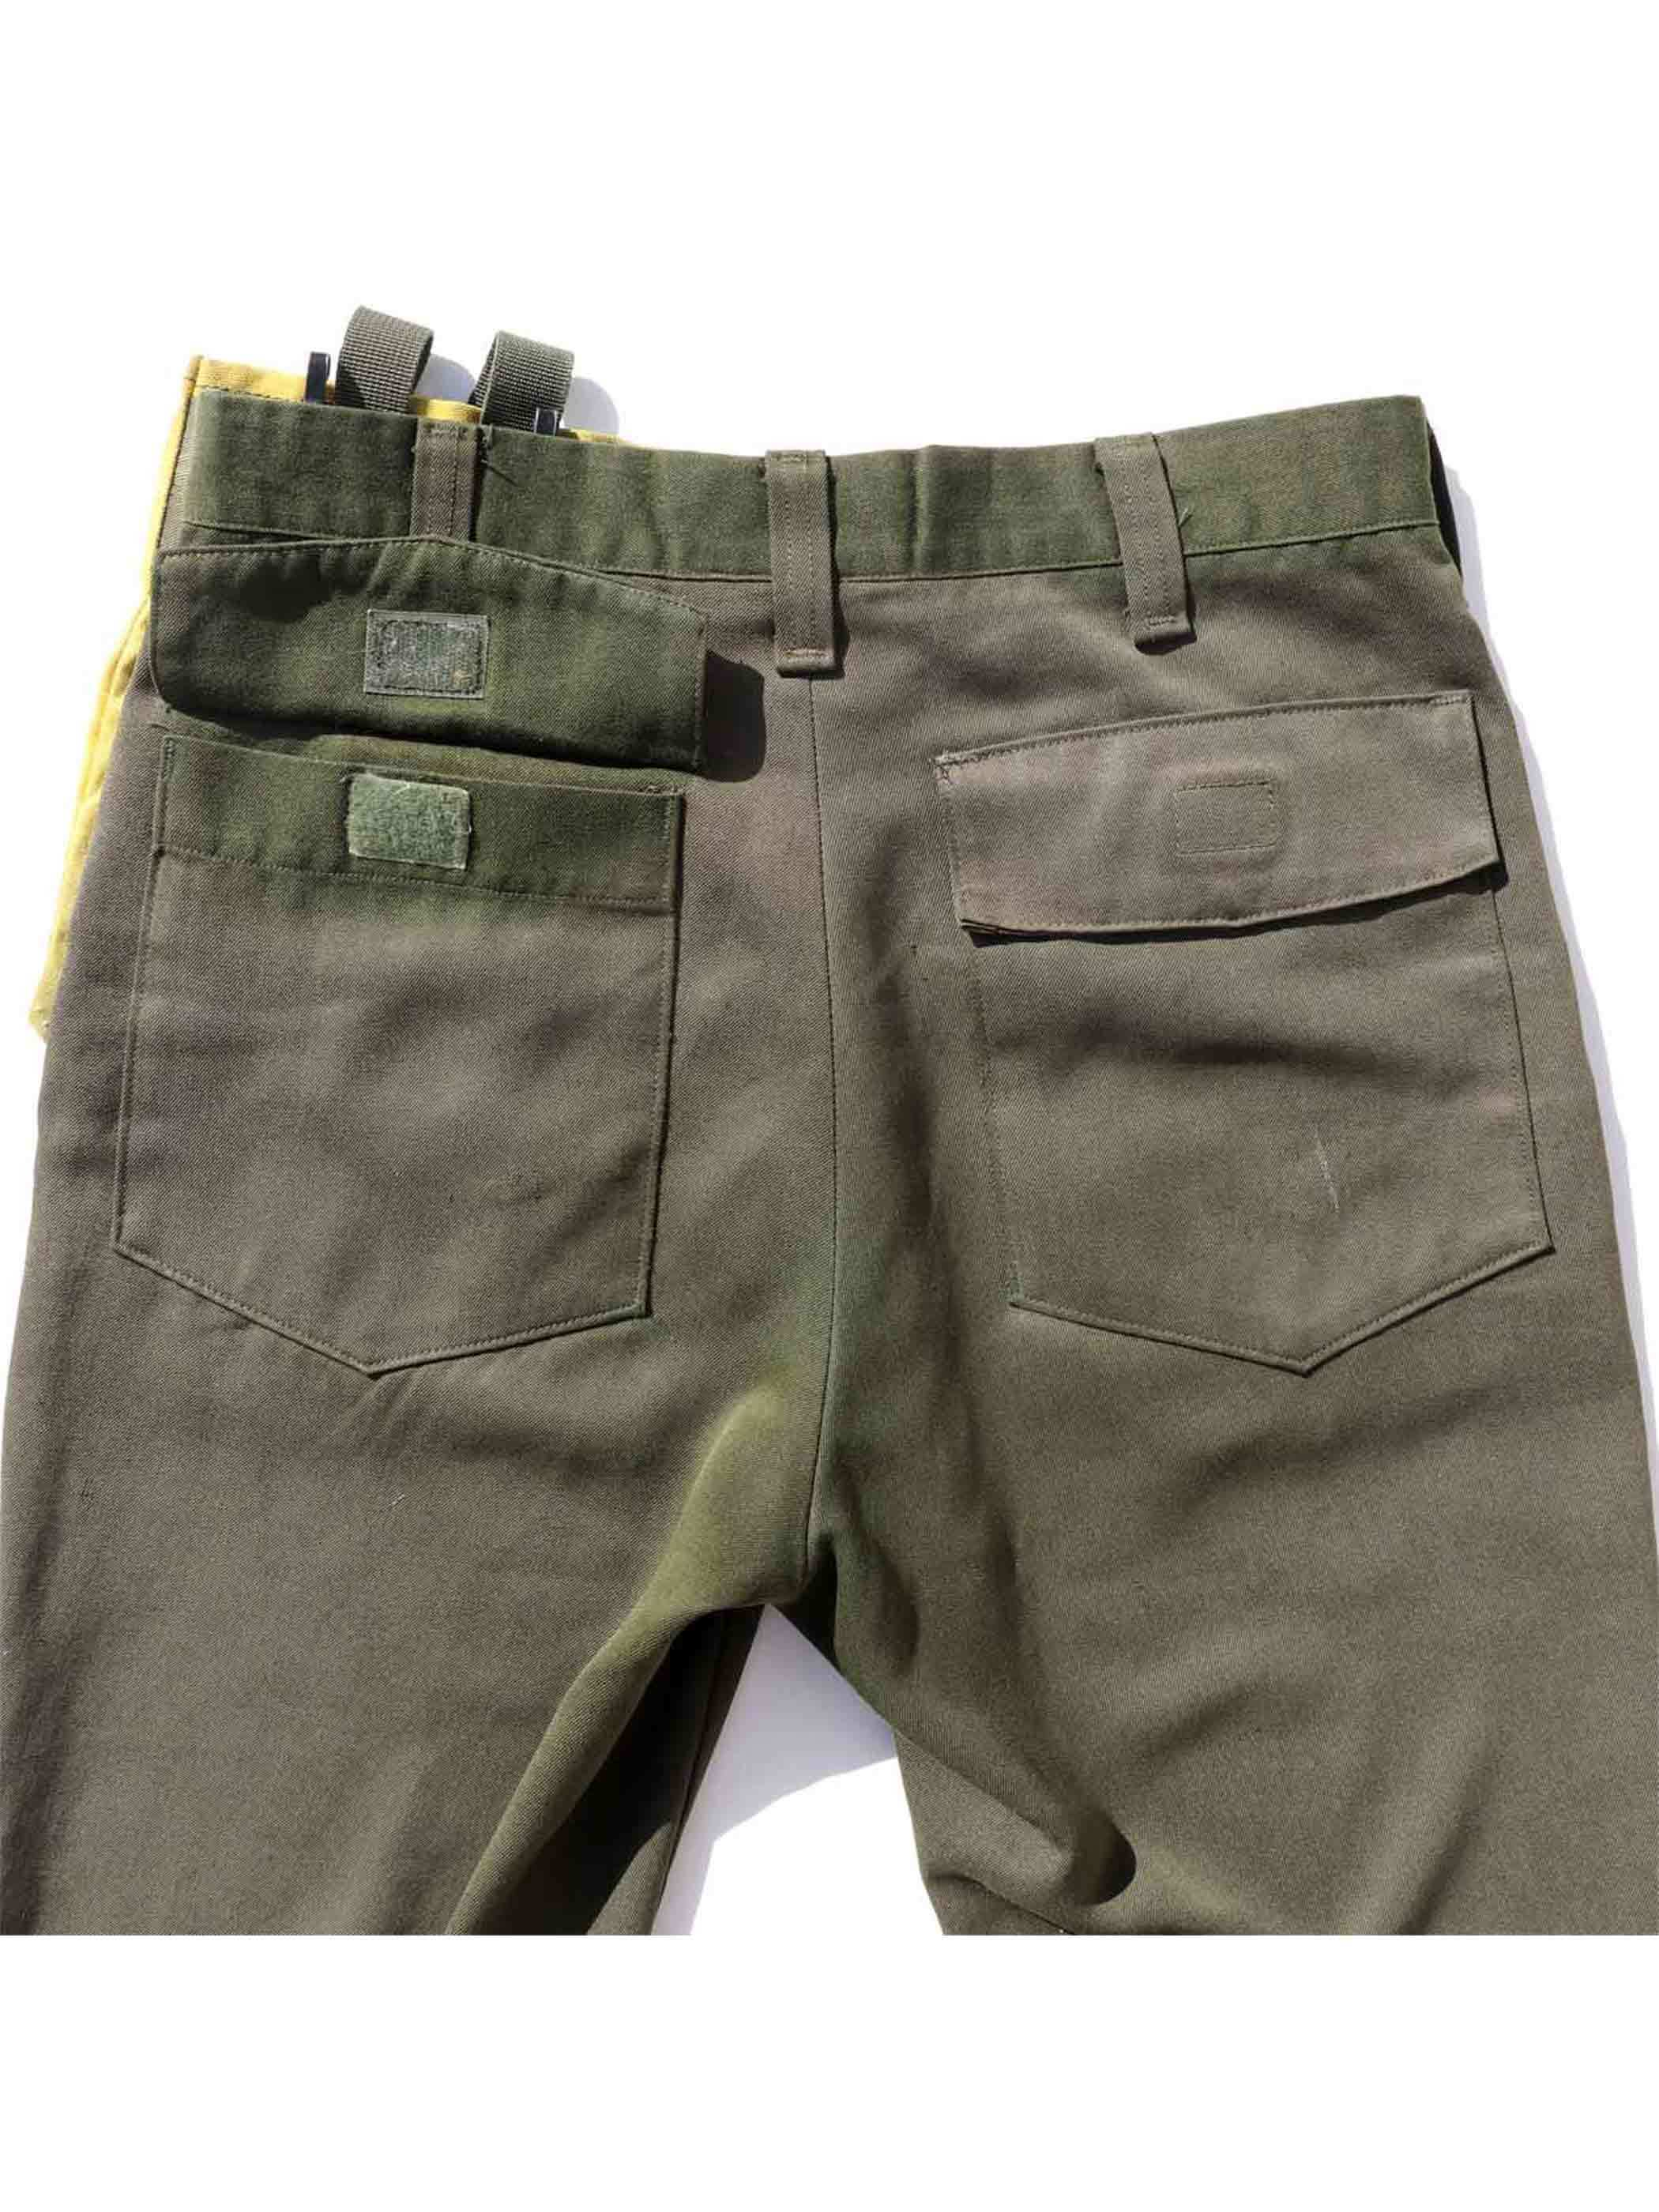 80's U.S. FOREST SERVICE Aramid Flame Resistant Pants [W32]